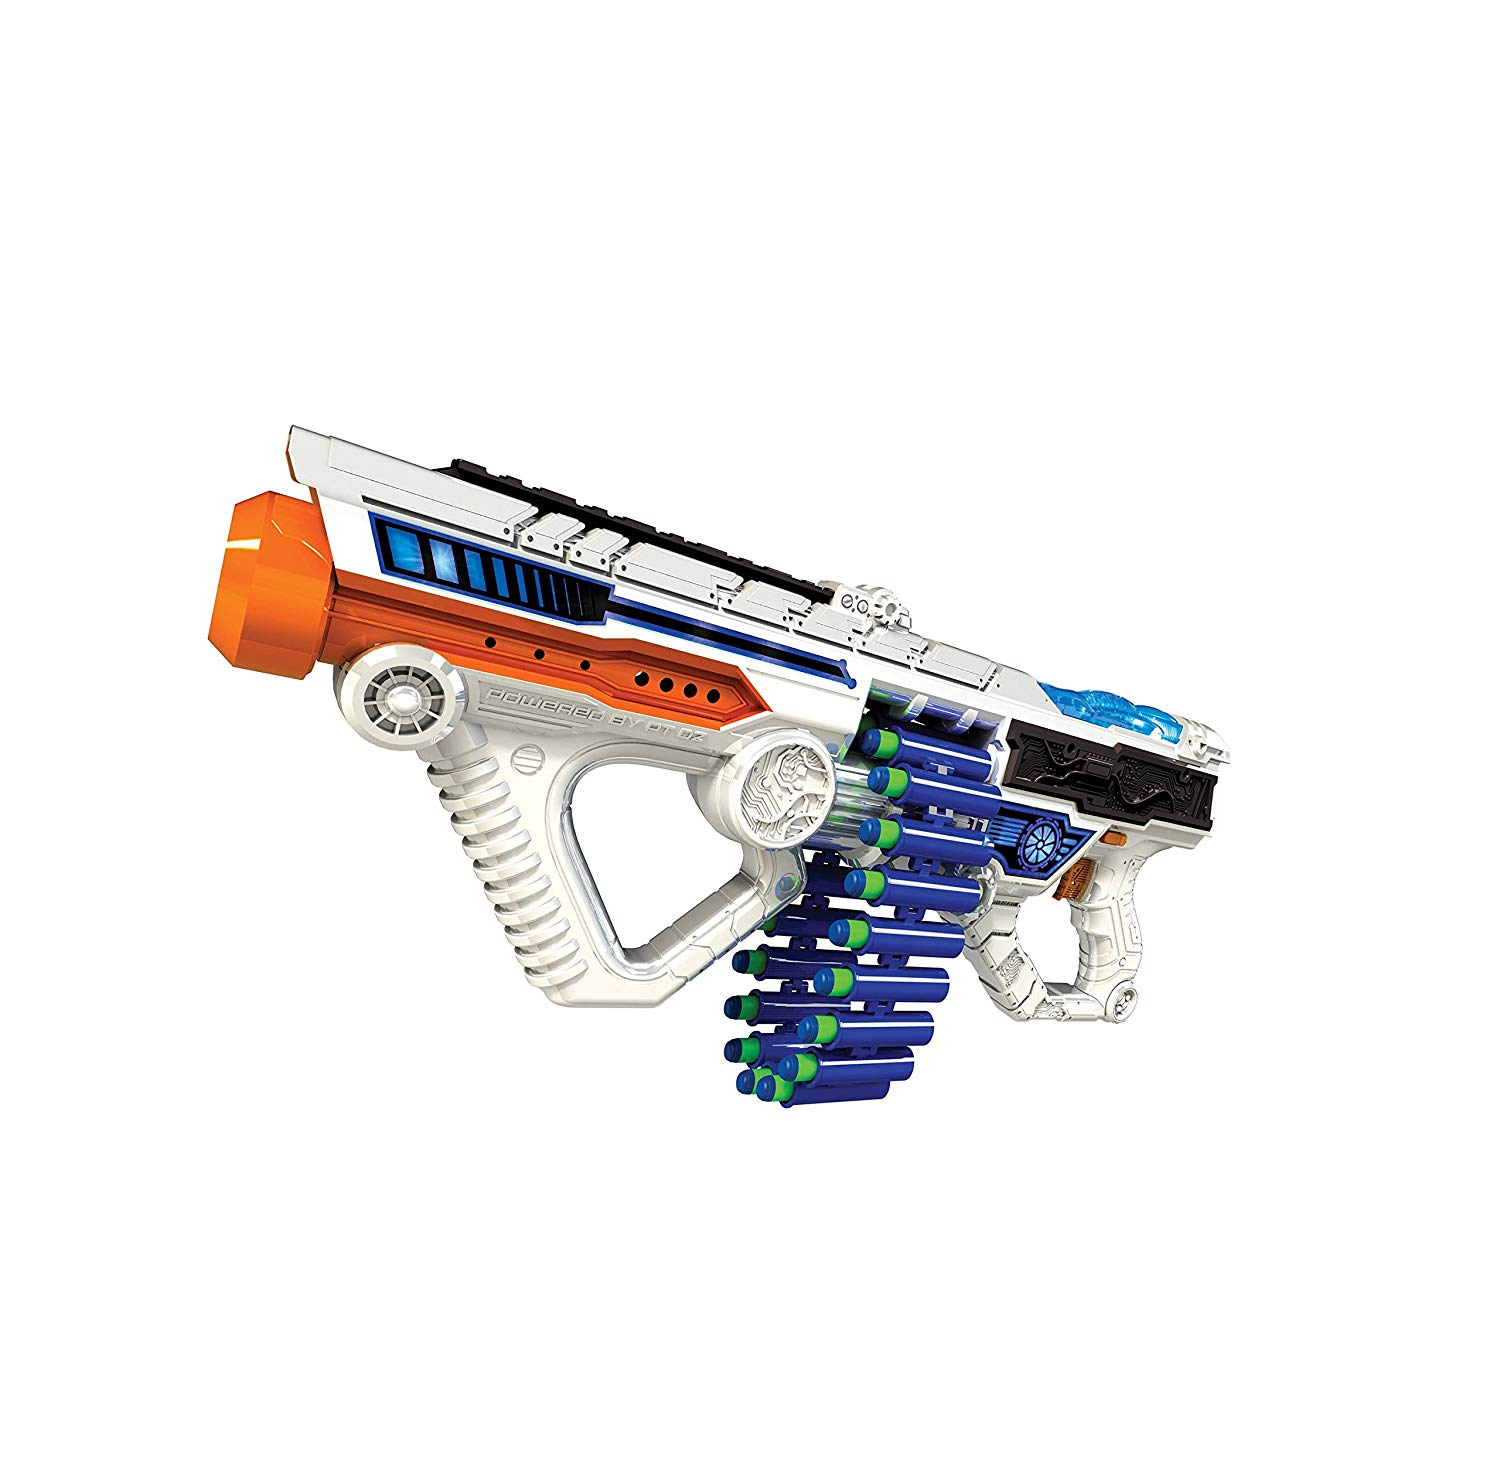 6868 LightWalmartmand Light-up Motorized Blaster, Brand New in box. The product ships with all relevant accessories By Adventure Force